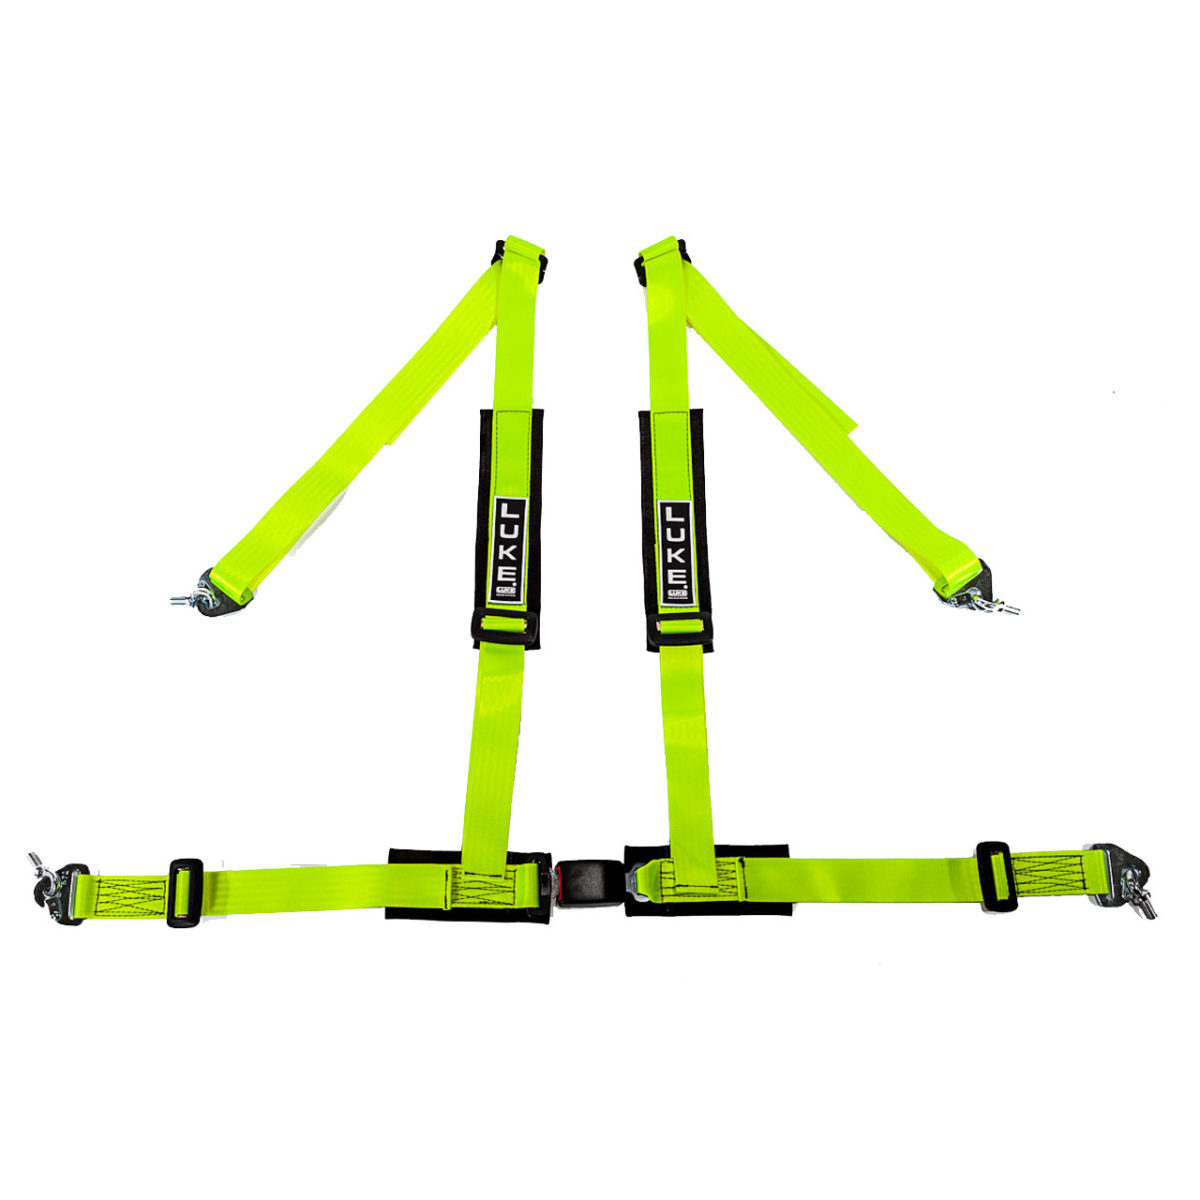 LUKE 4 Point Harness in Yellow